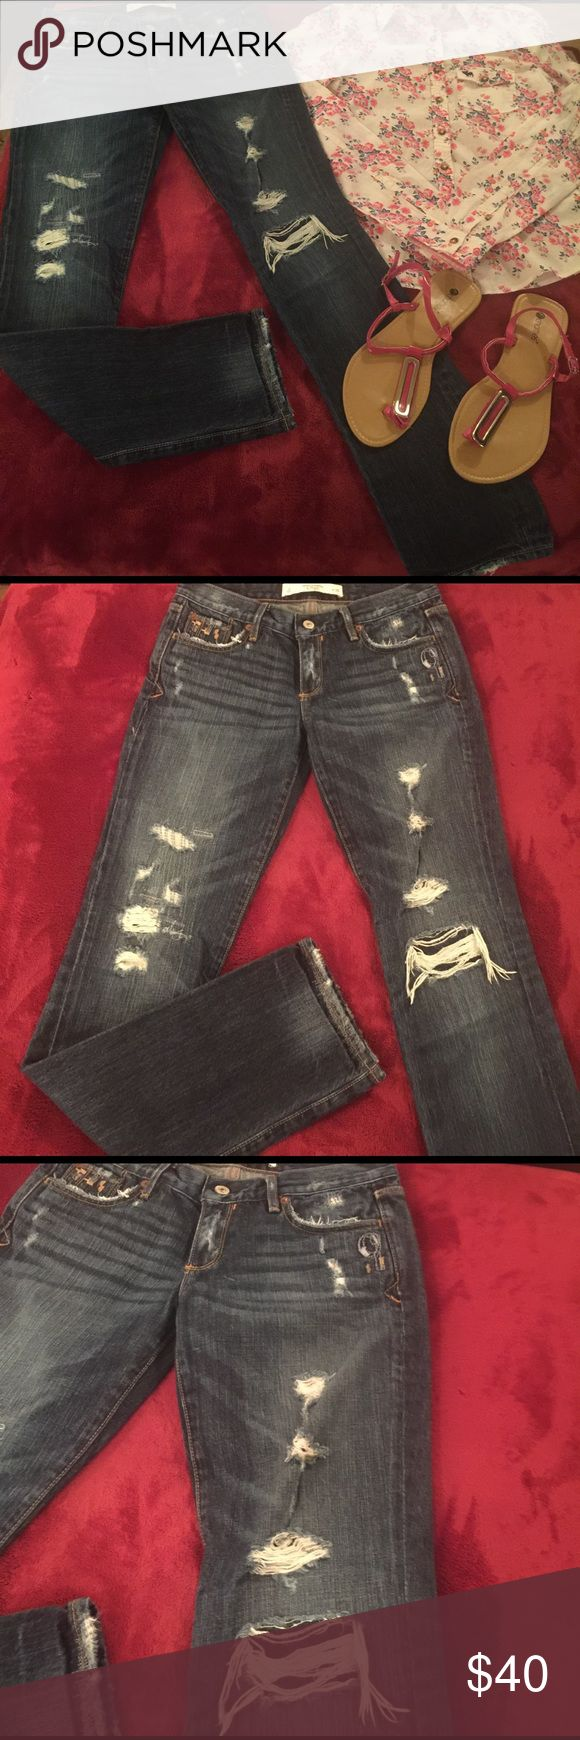 NWOT! Abercrombie Jeans! NWOT! Size 2. 31 length! Super Cute! Jeans are a dark wash! A tad darker than pic! Shirt in pic is Abercrombie Floral button down! Sandals are Chatties in excellent condition size 8. Cute outfit. Other items listed separately! Abercrombie & Fitch Jeans Straight Leg